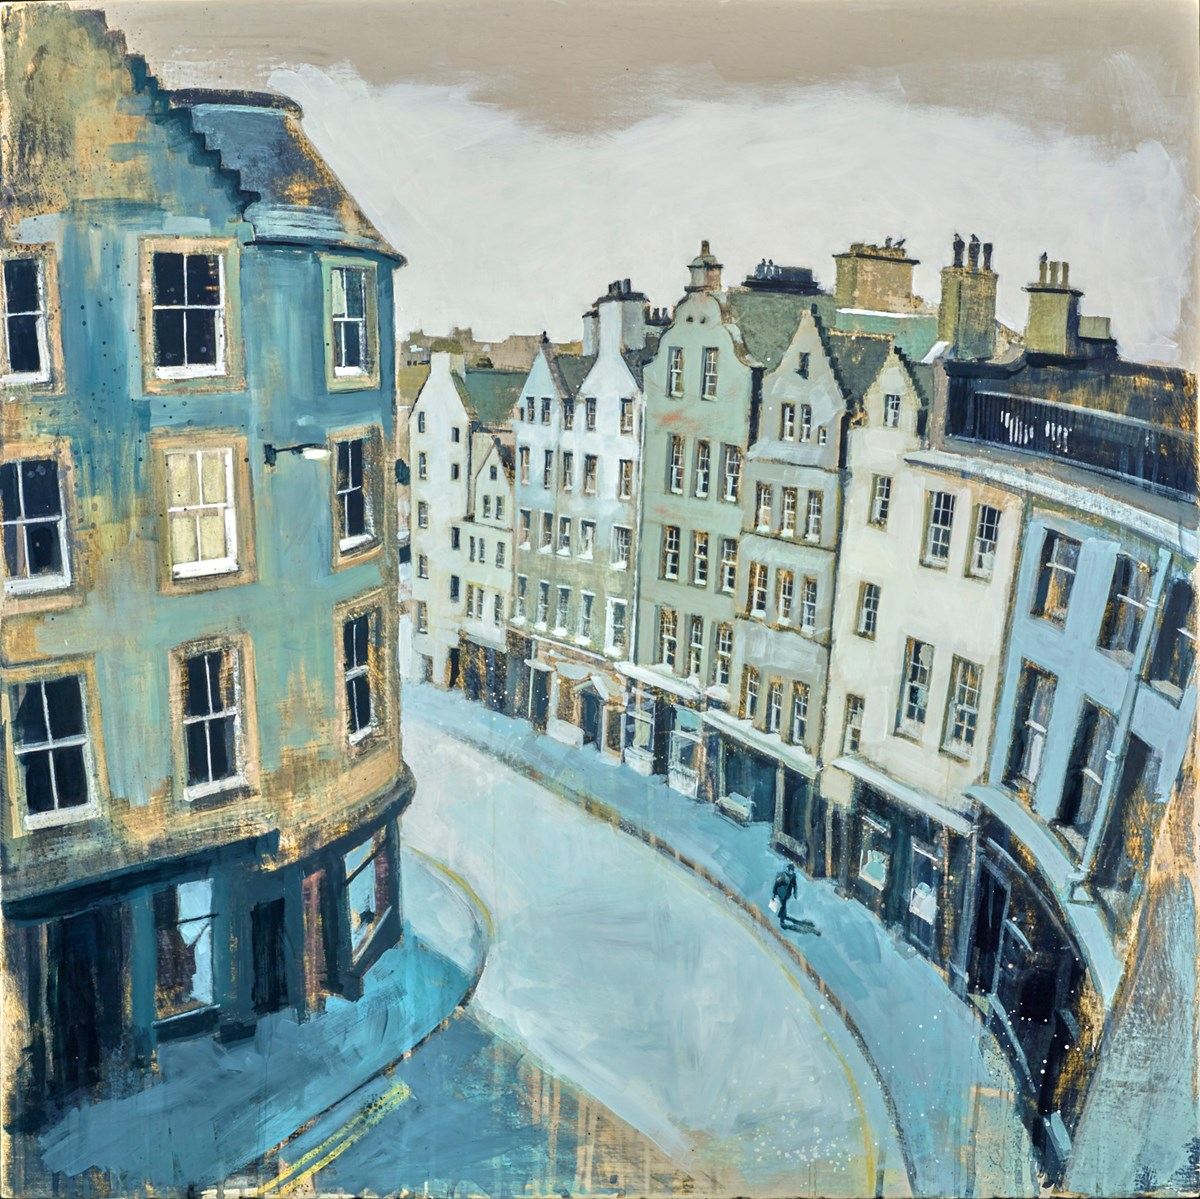 Victoria Street, Edinburgh by camilla dowse -  sized 30x30 inches. Available from Whitewall Galleries